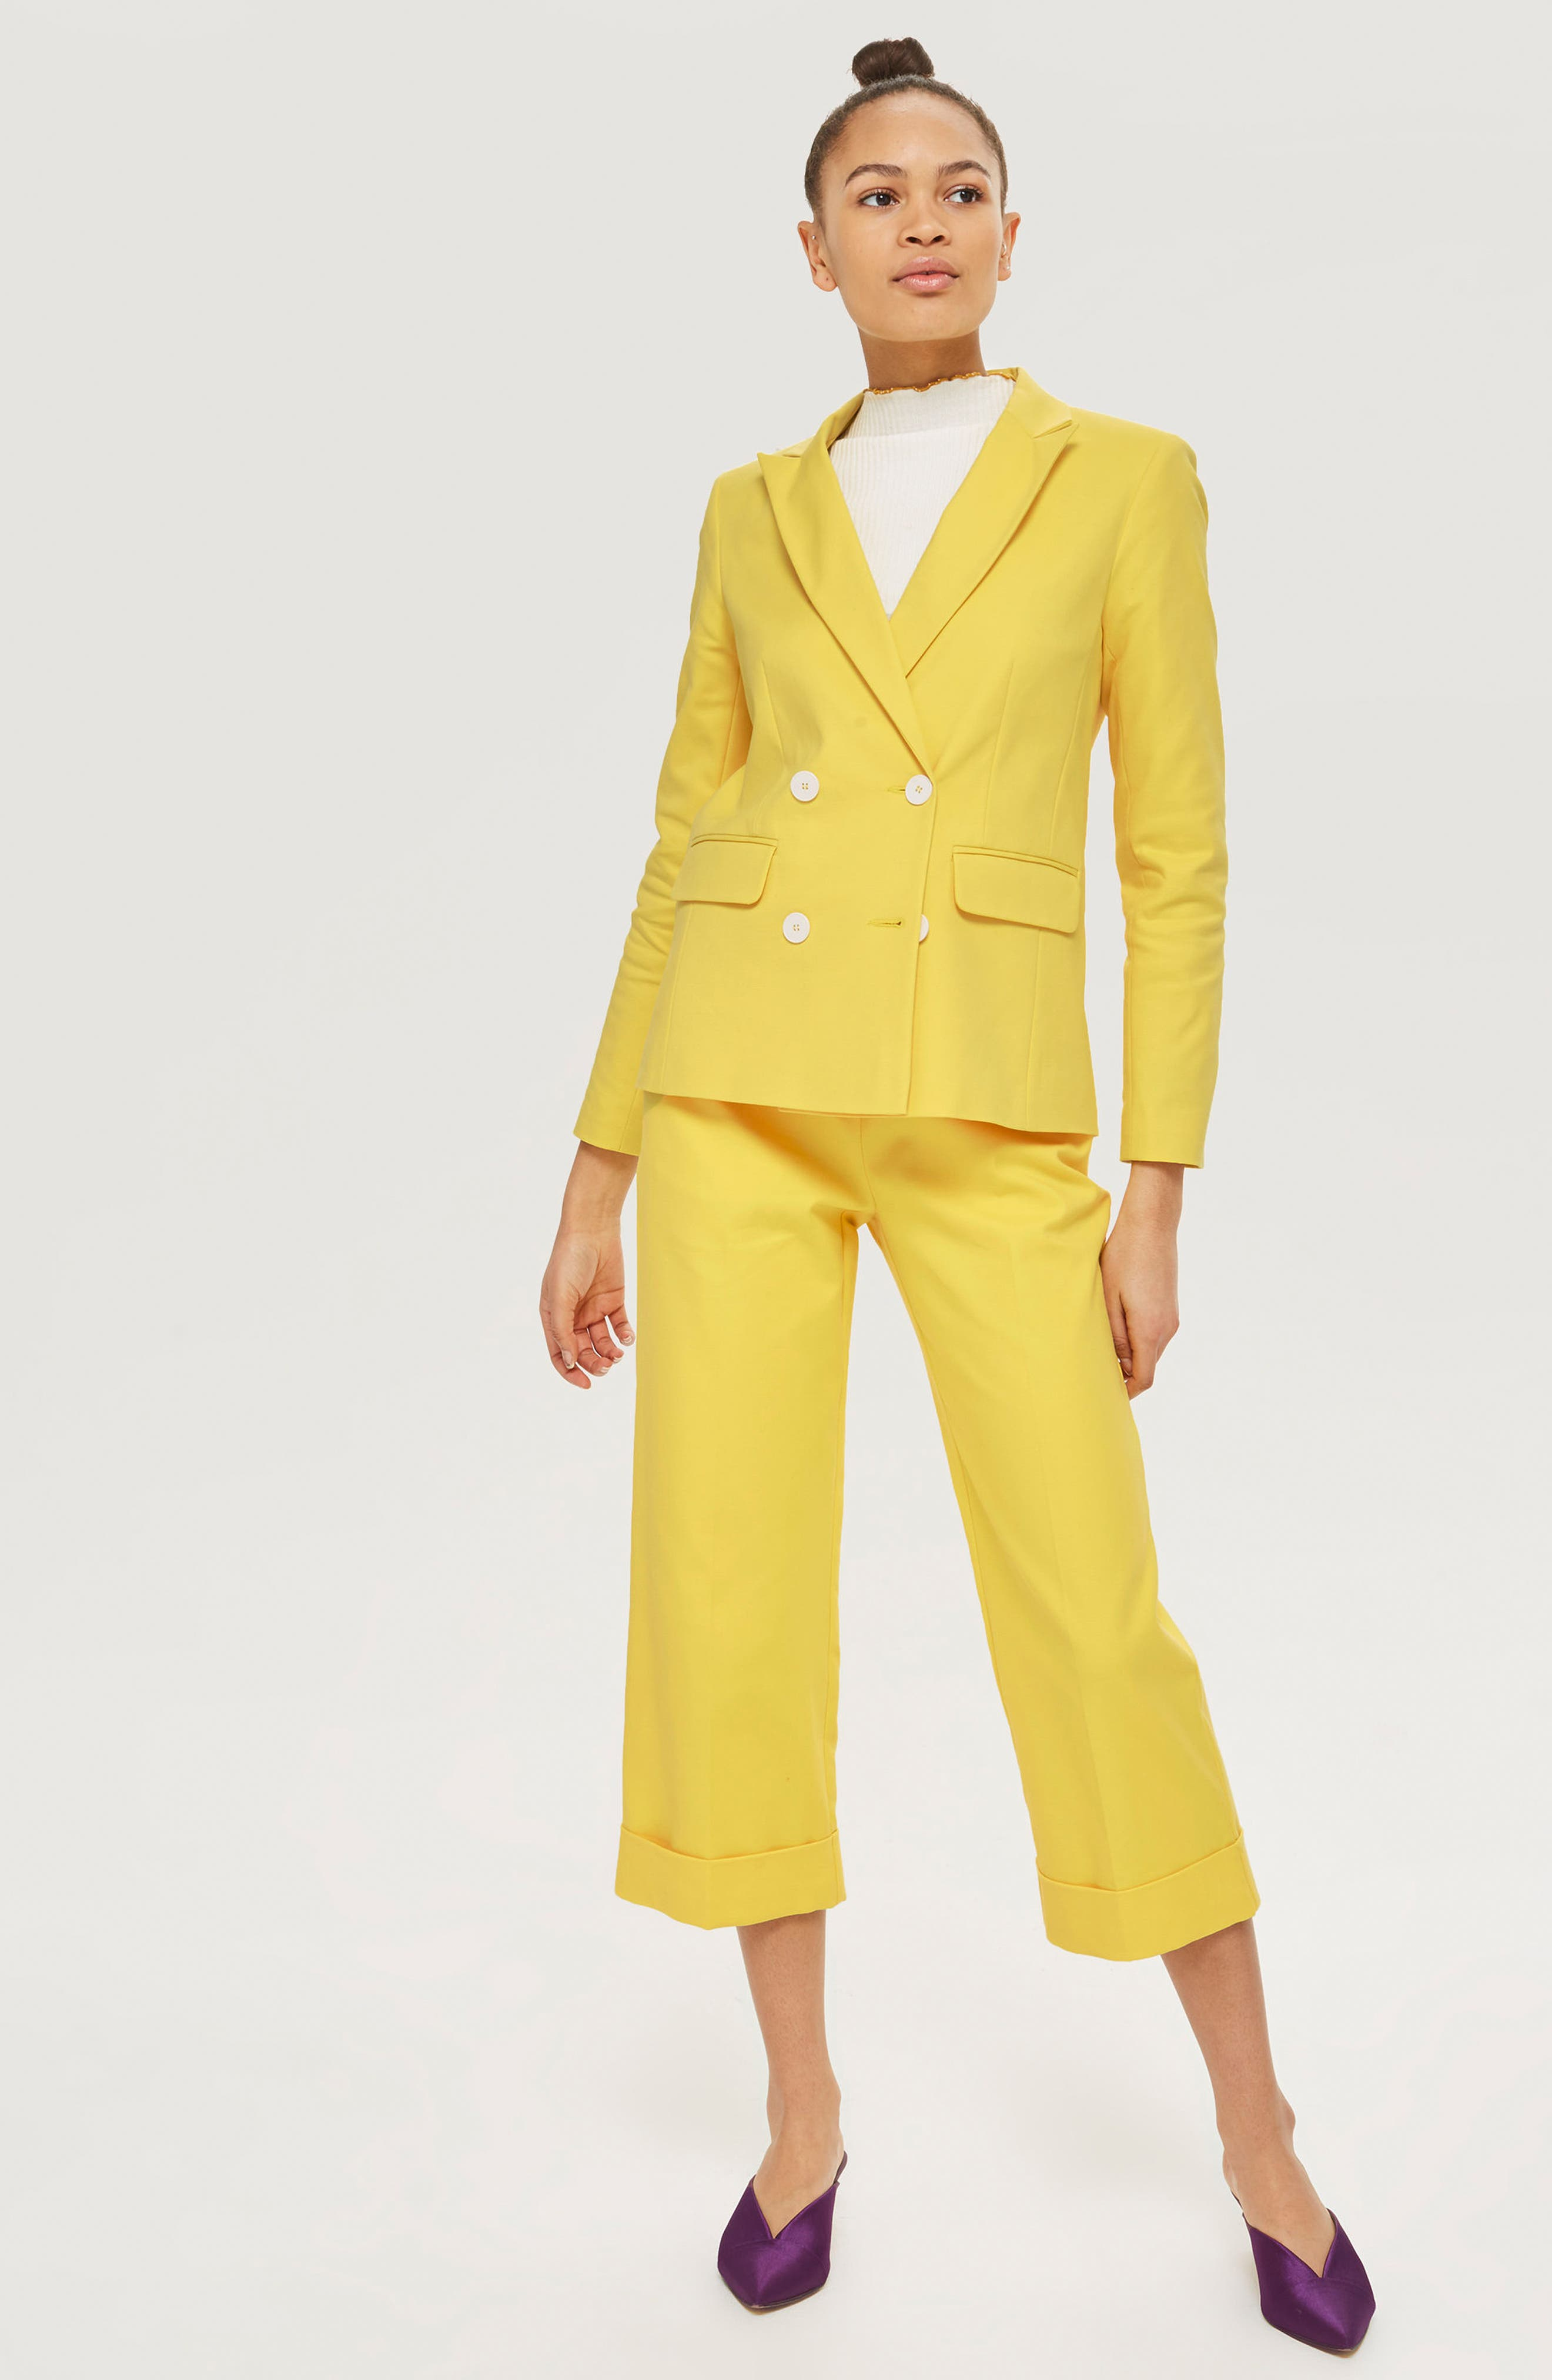 Milly Double Breasted Suit Jacket,                             Alternate thumbnail 2, color,                             Yellow